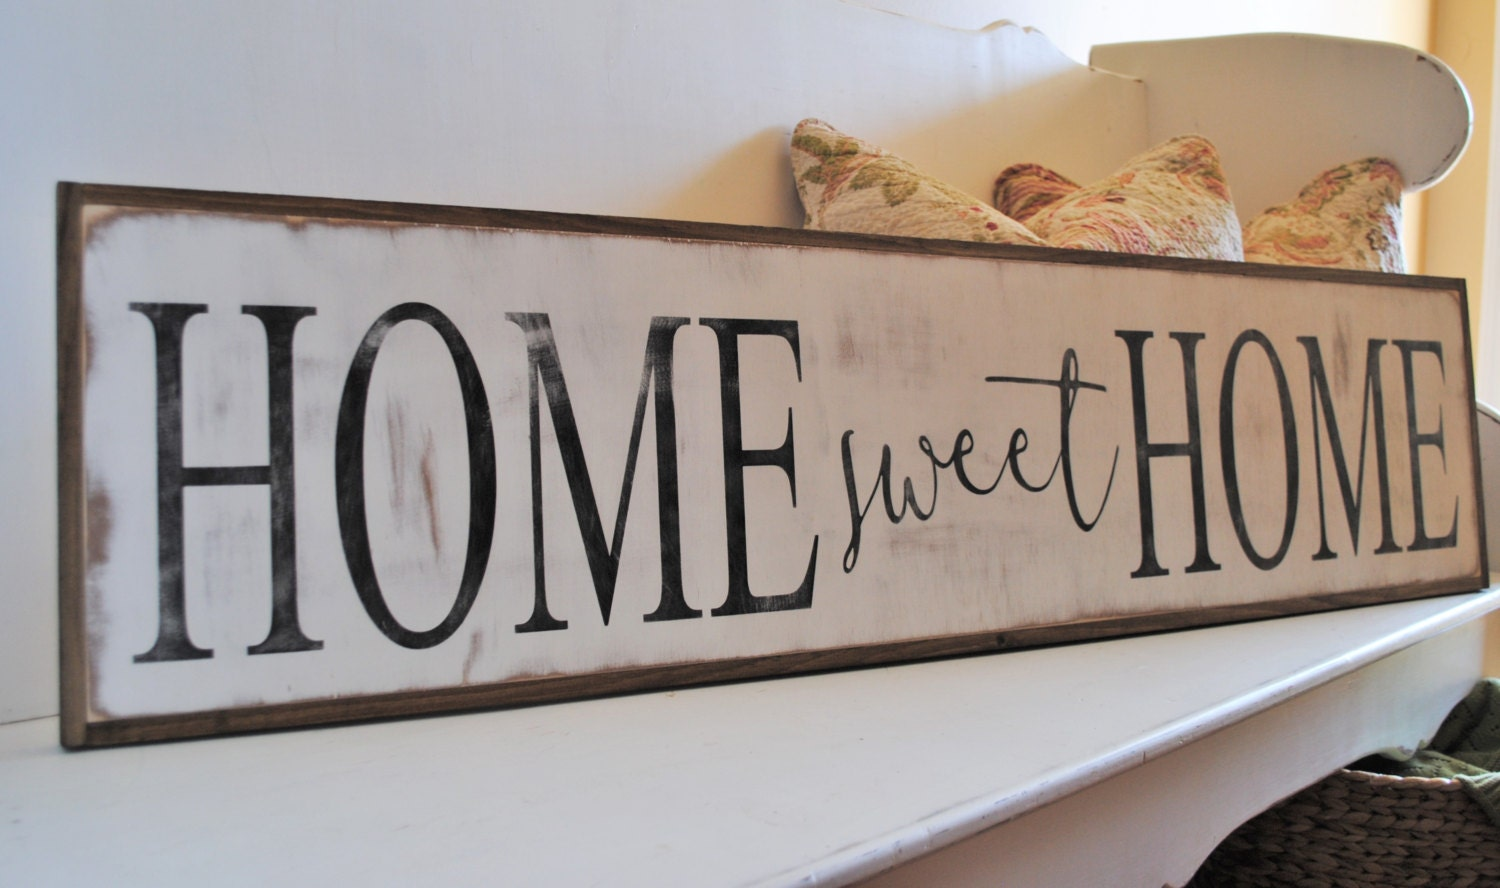 Home sweet home 1 39 x4 39 sign distressed shabby chic wooden for Sign decoration